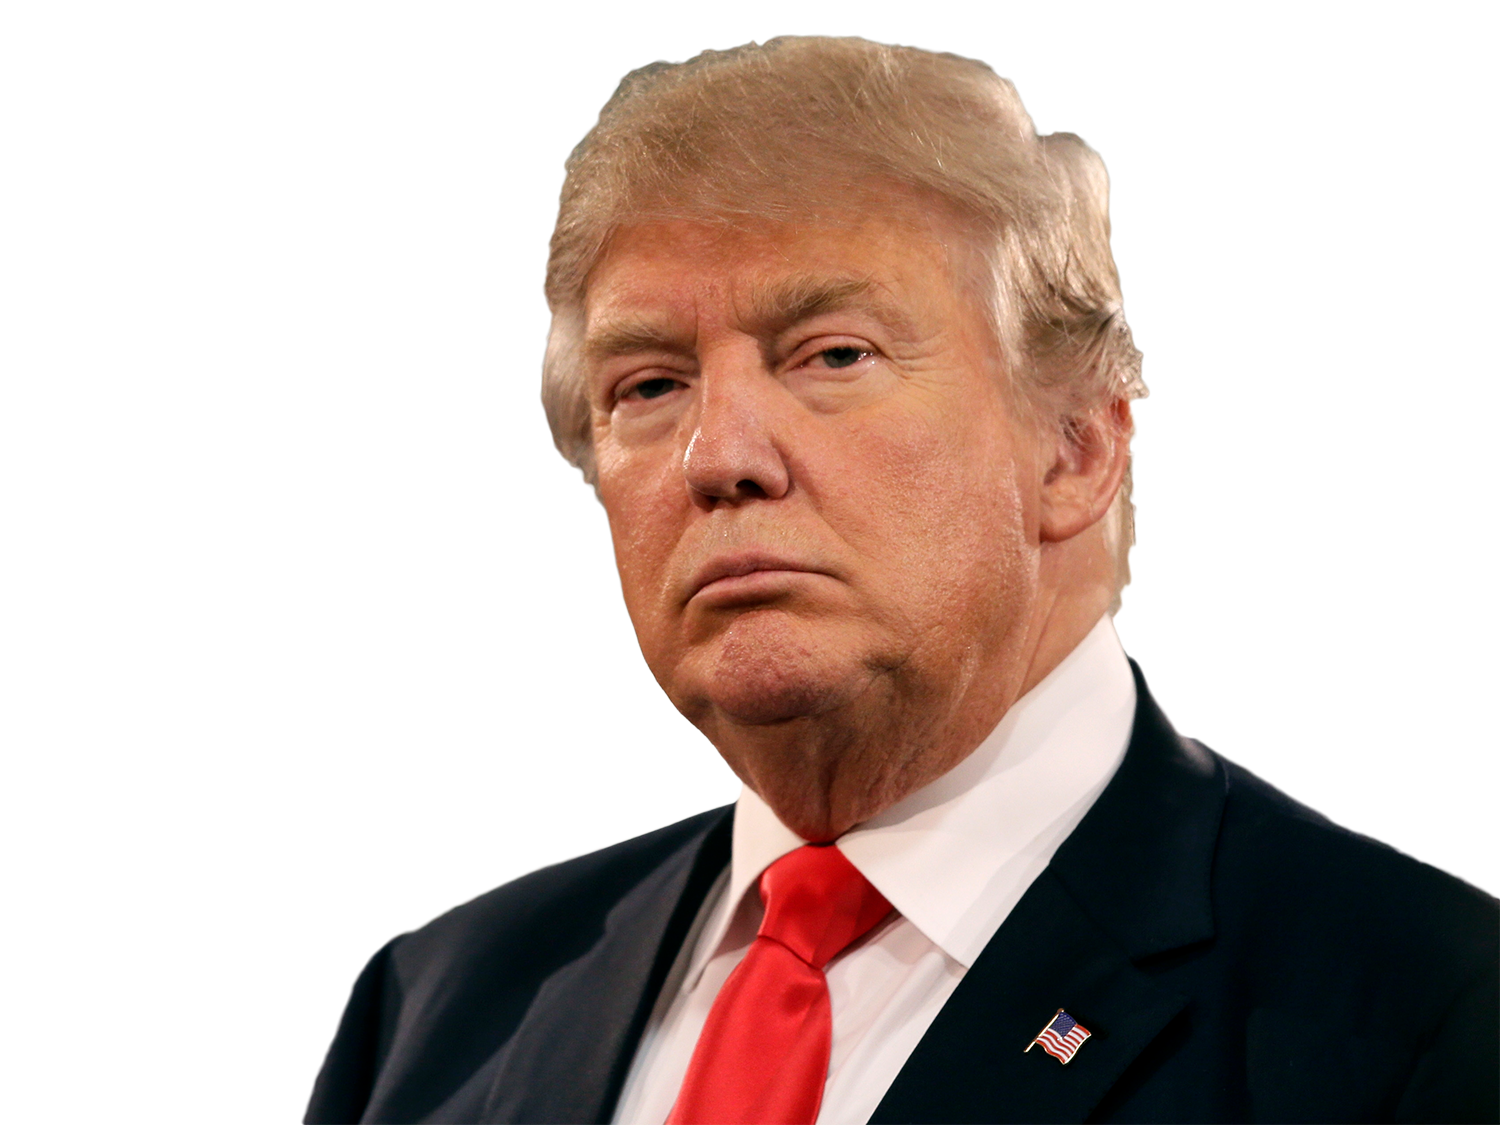 donald trump png image web icons png #18704